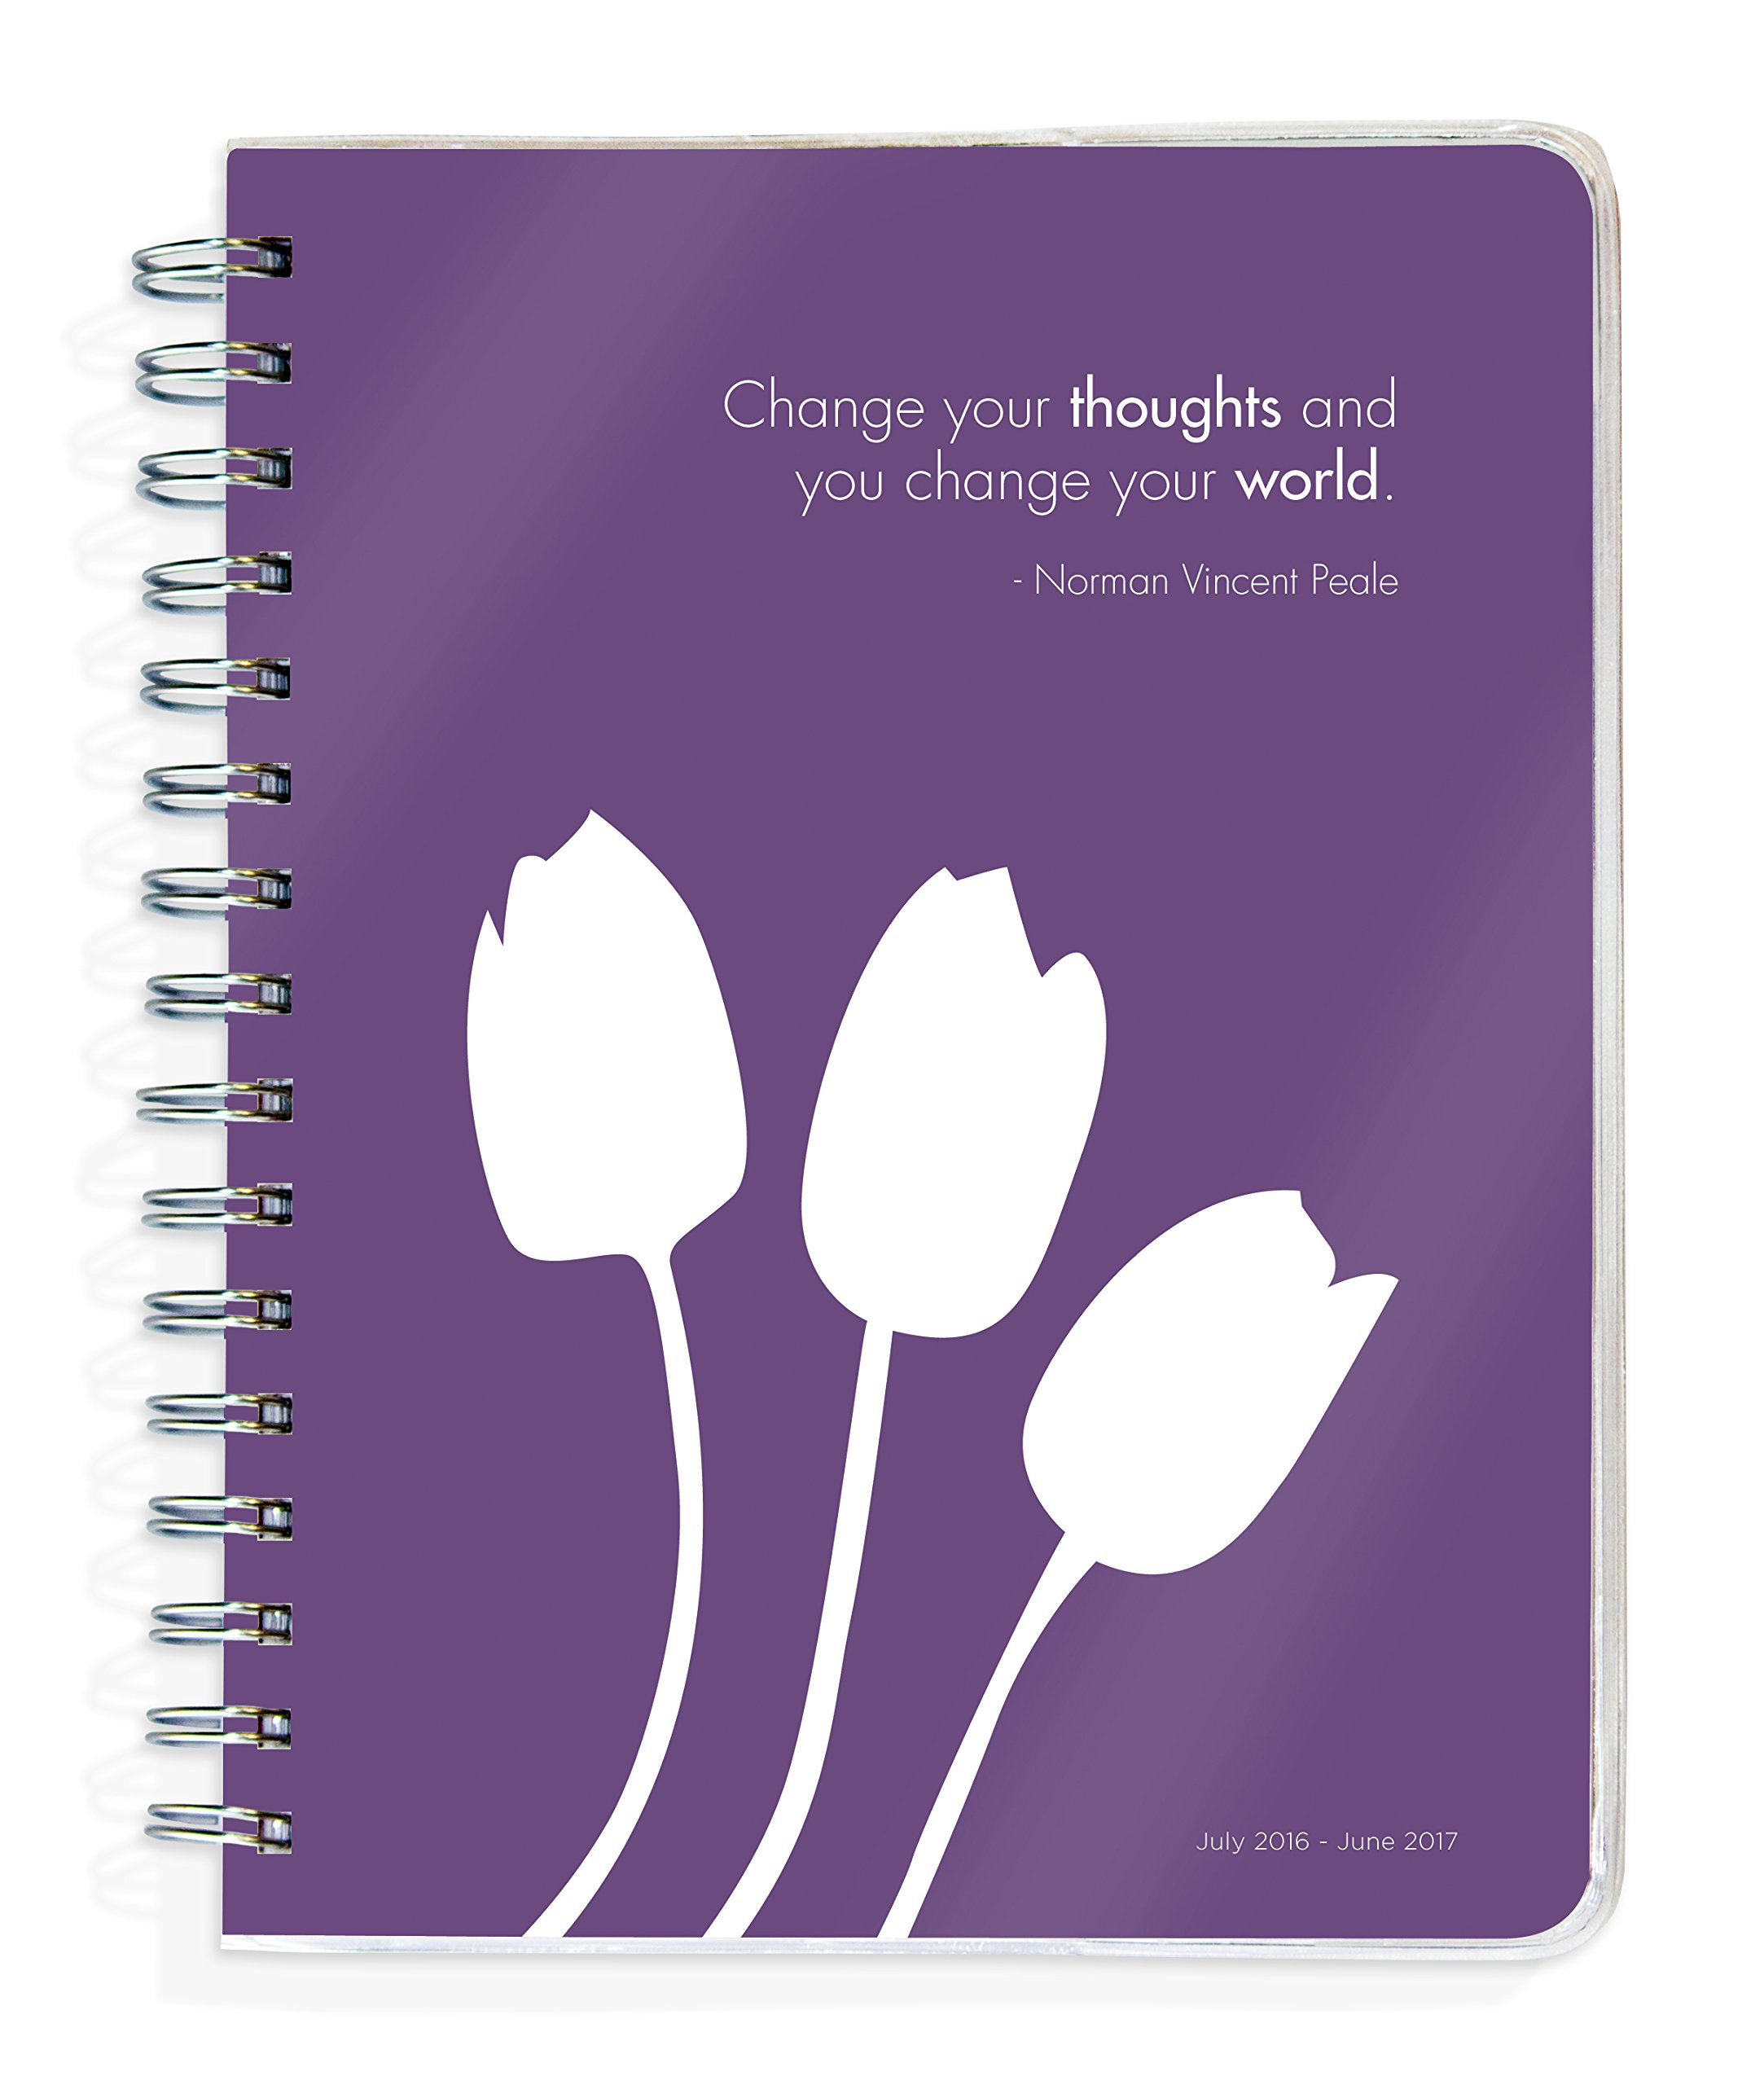 2017 Academic Year Inspire Spiral Engagement Planner - July ...